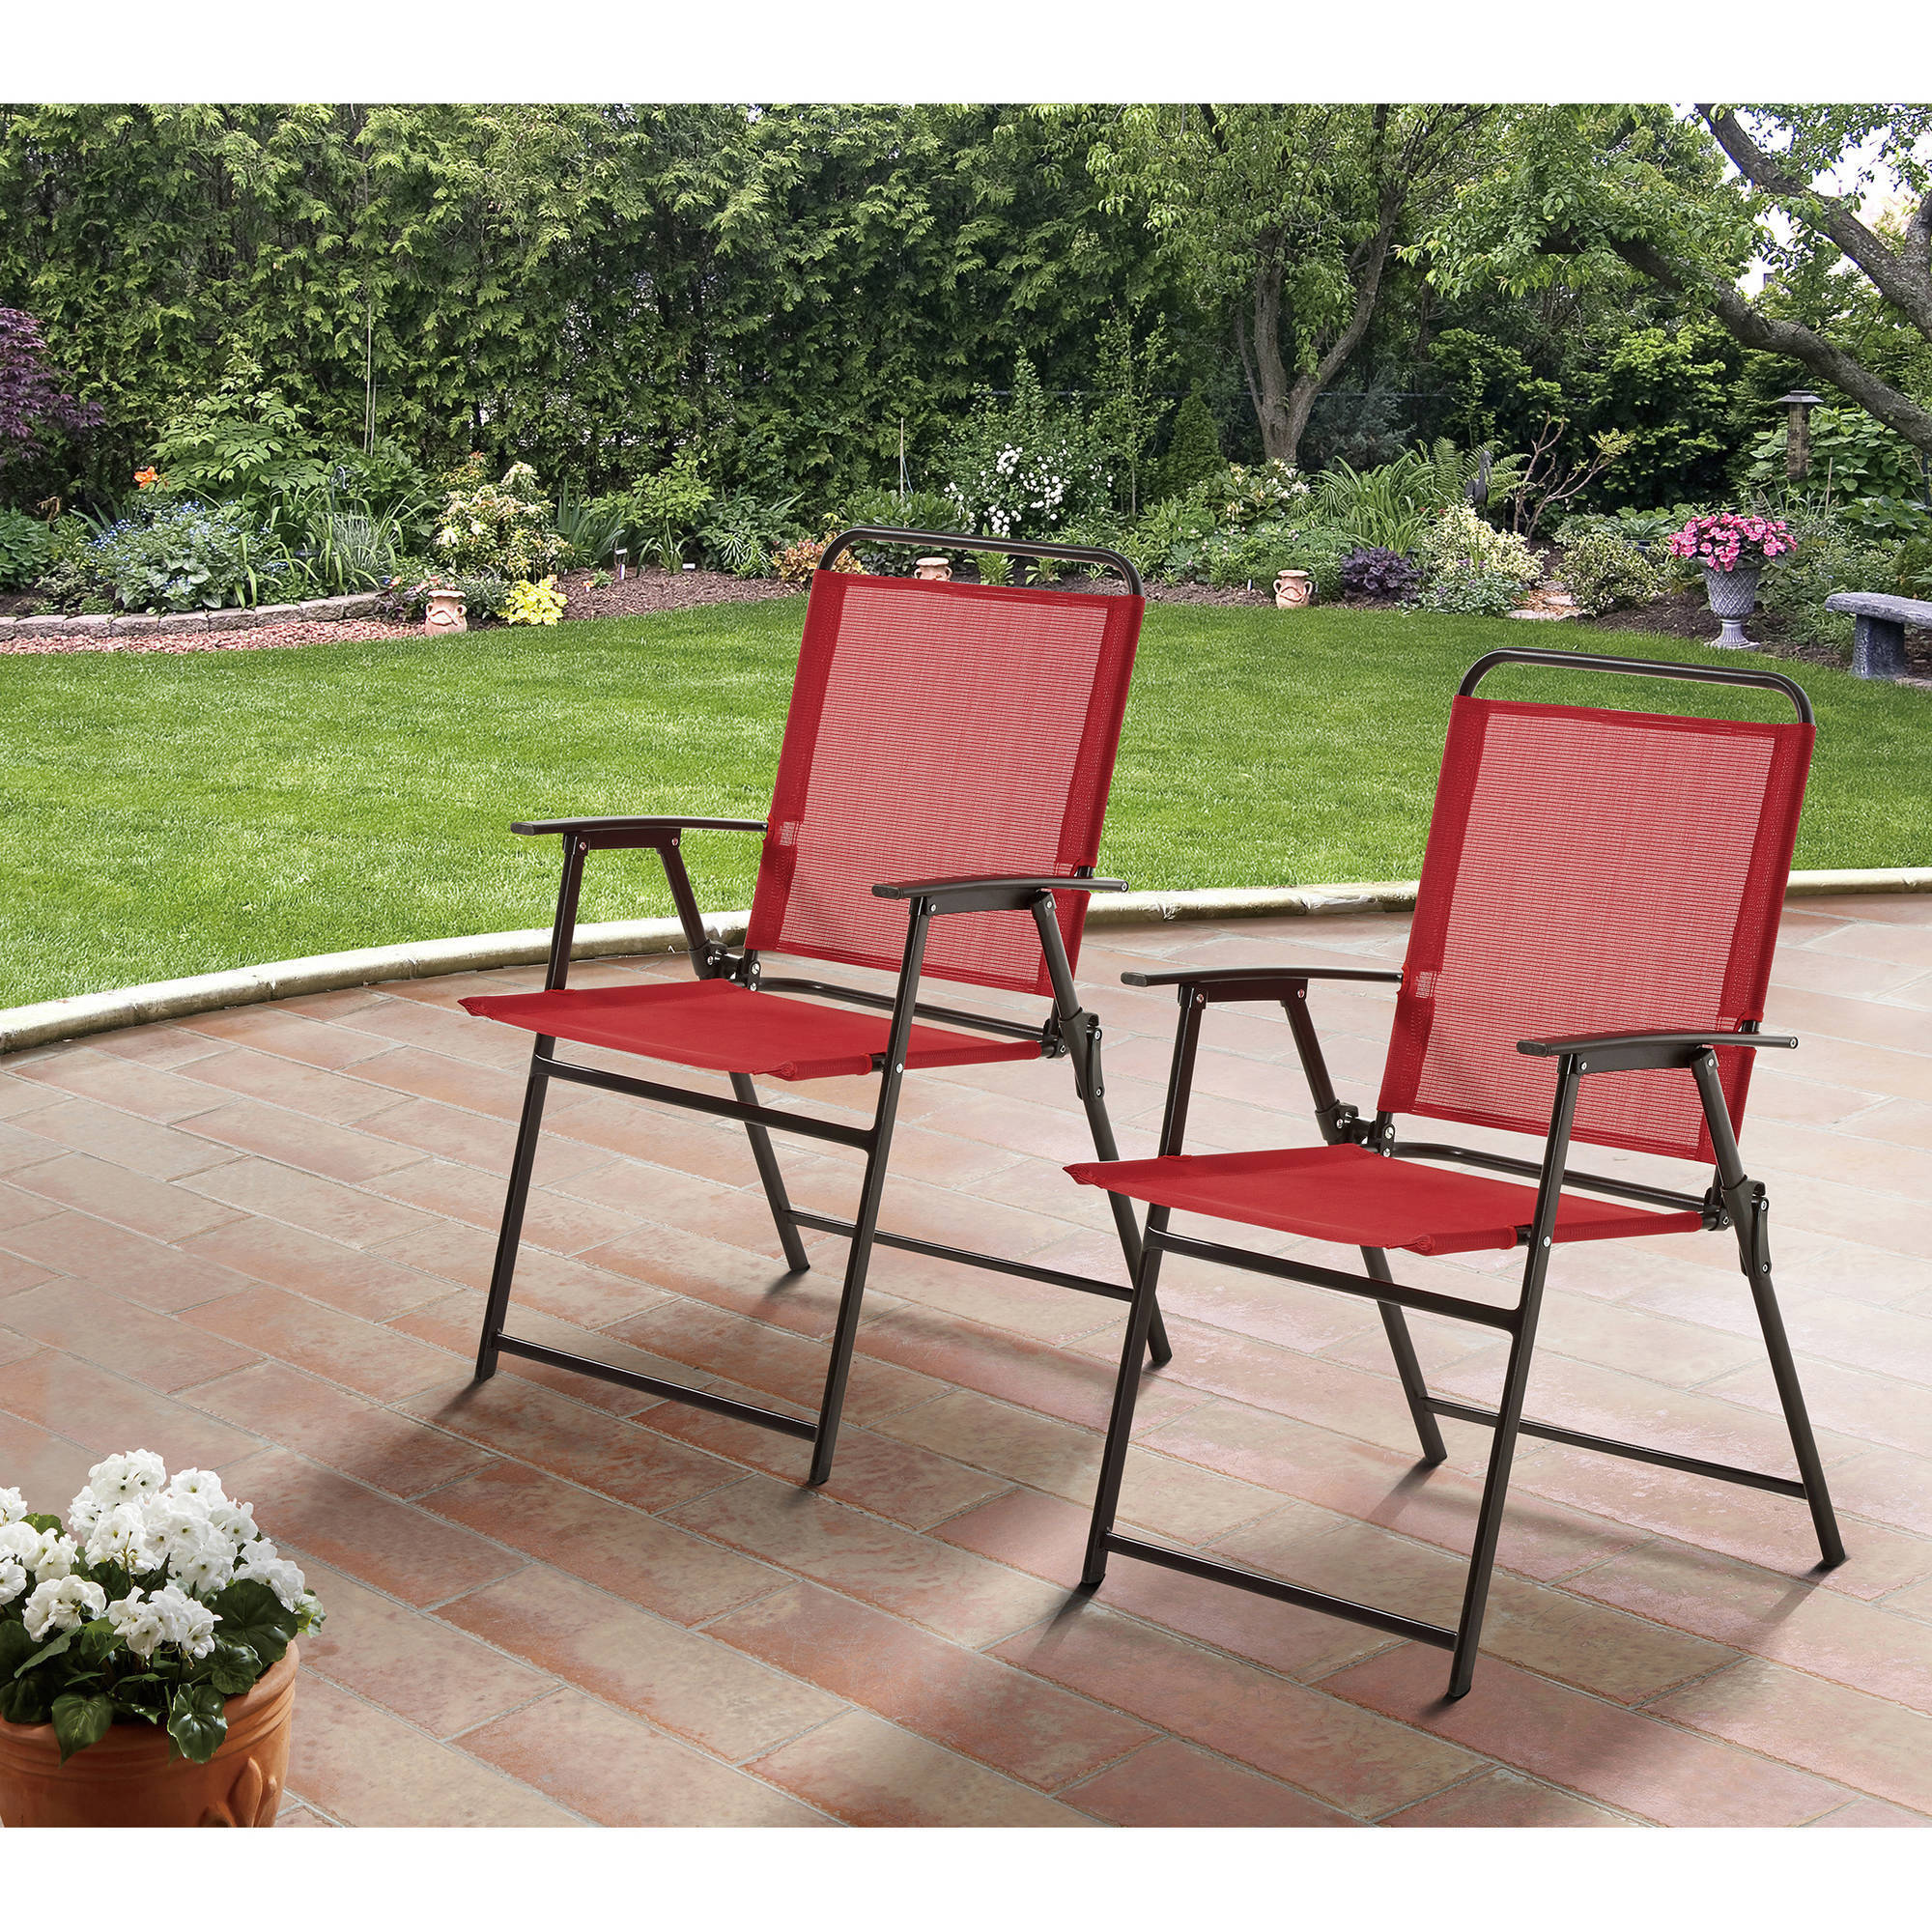 Mainstays Pleasant Grove Sling Folding Chair